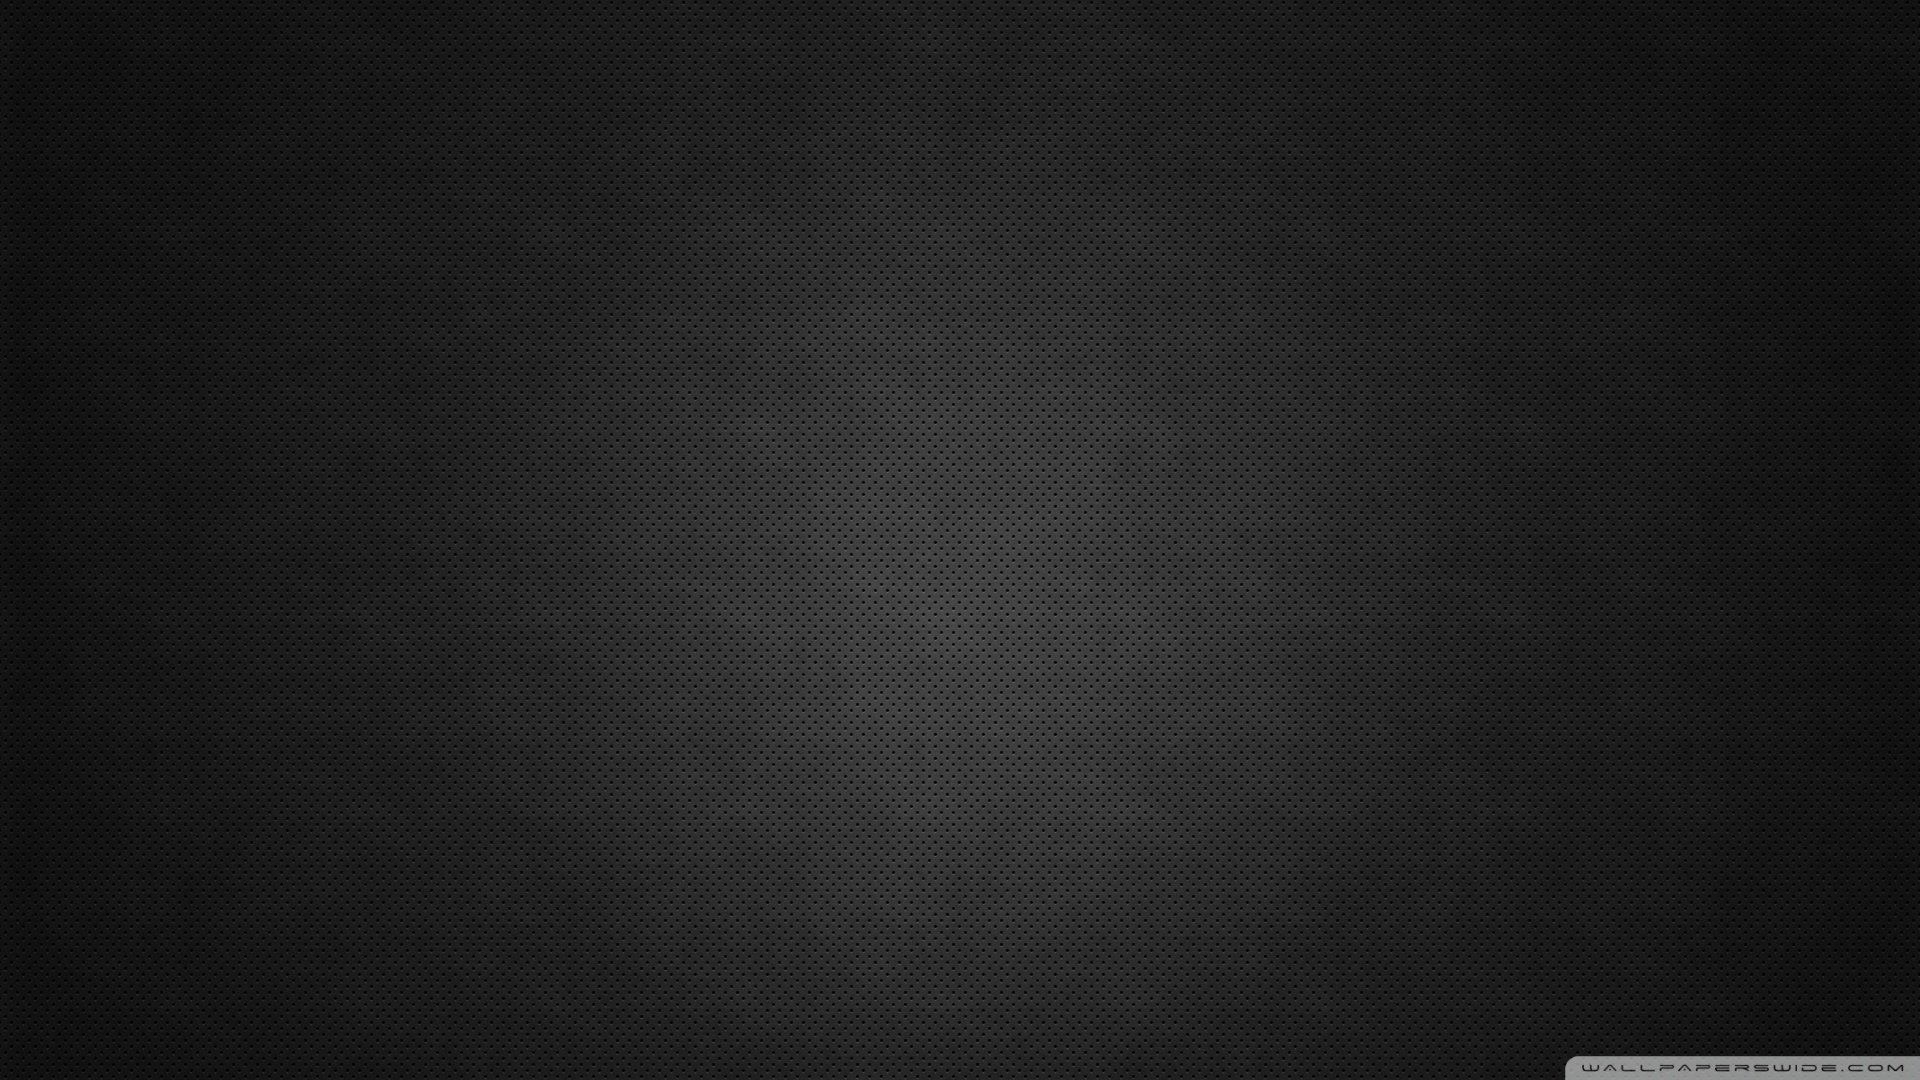 Black Background Metal Hole Very Small Wallpaper 1920x1080 Black 1920x1080